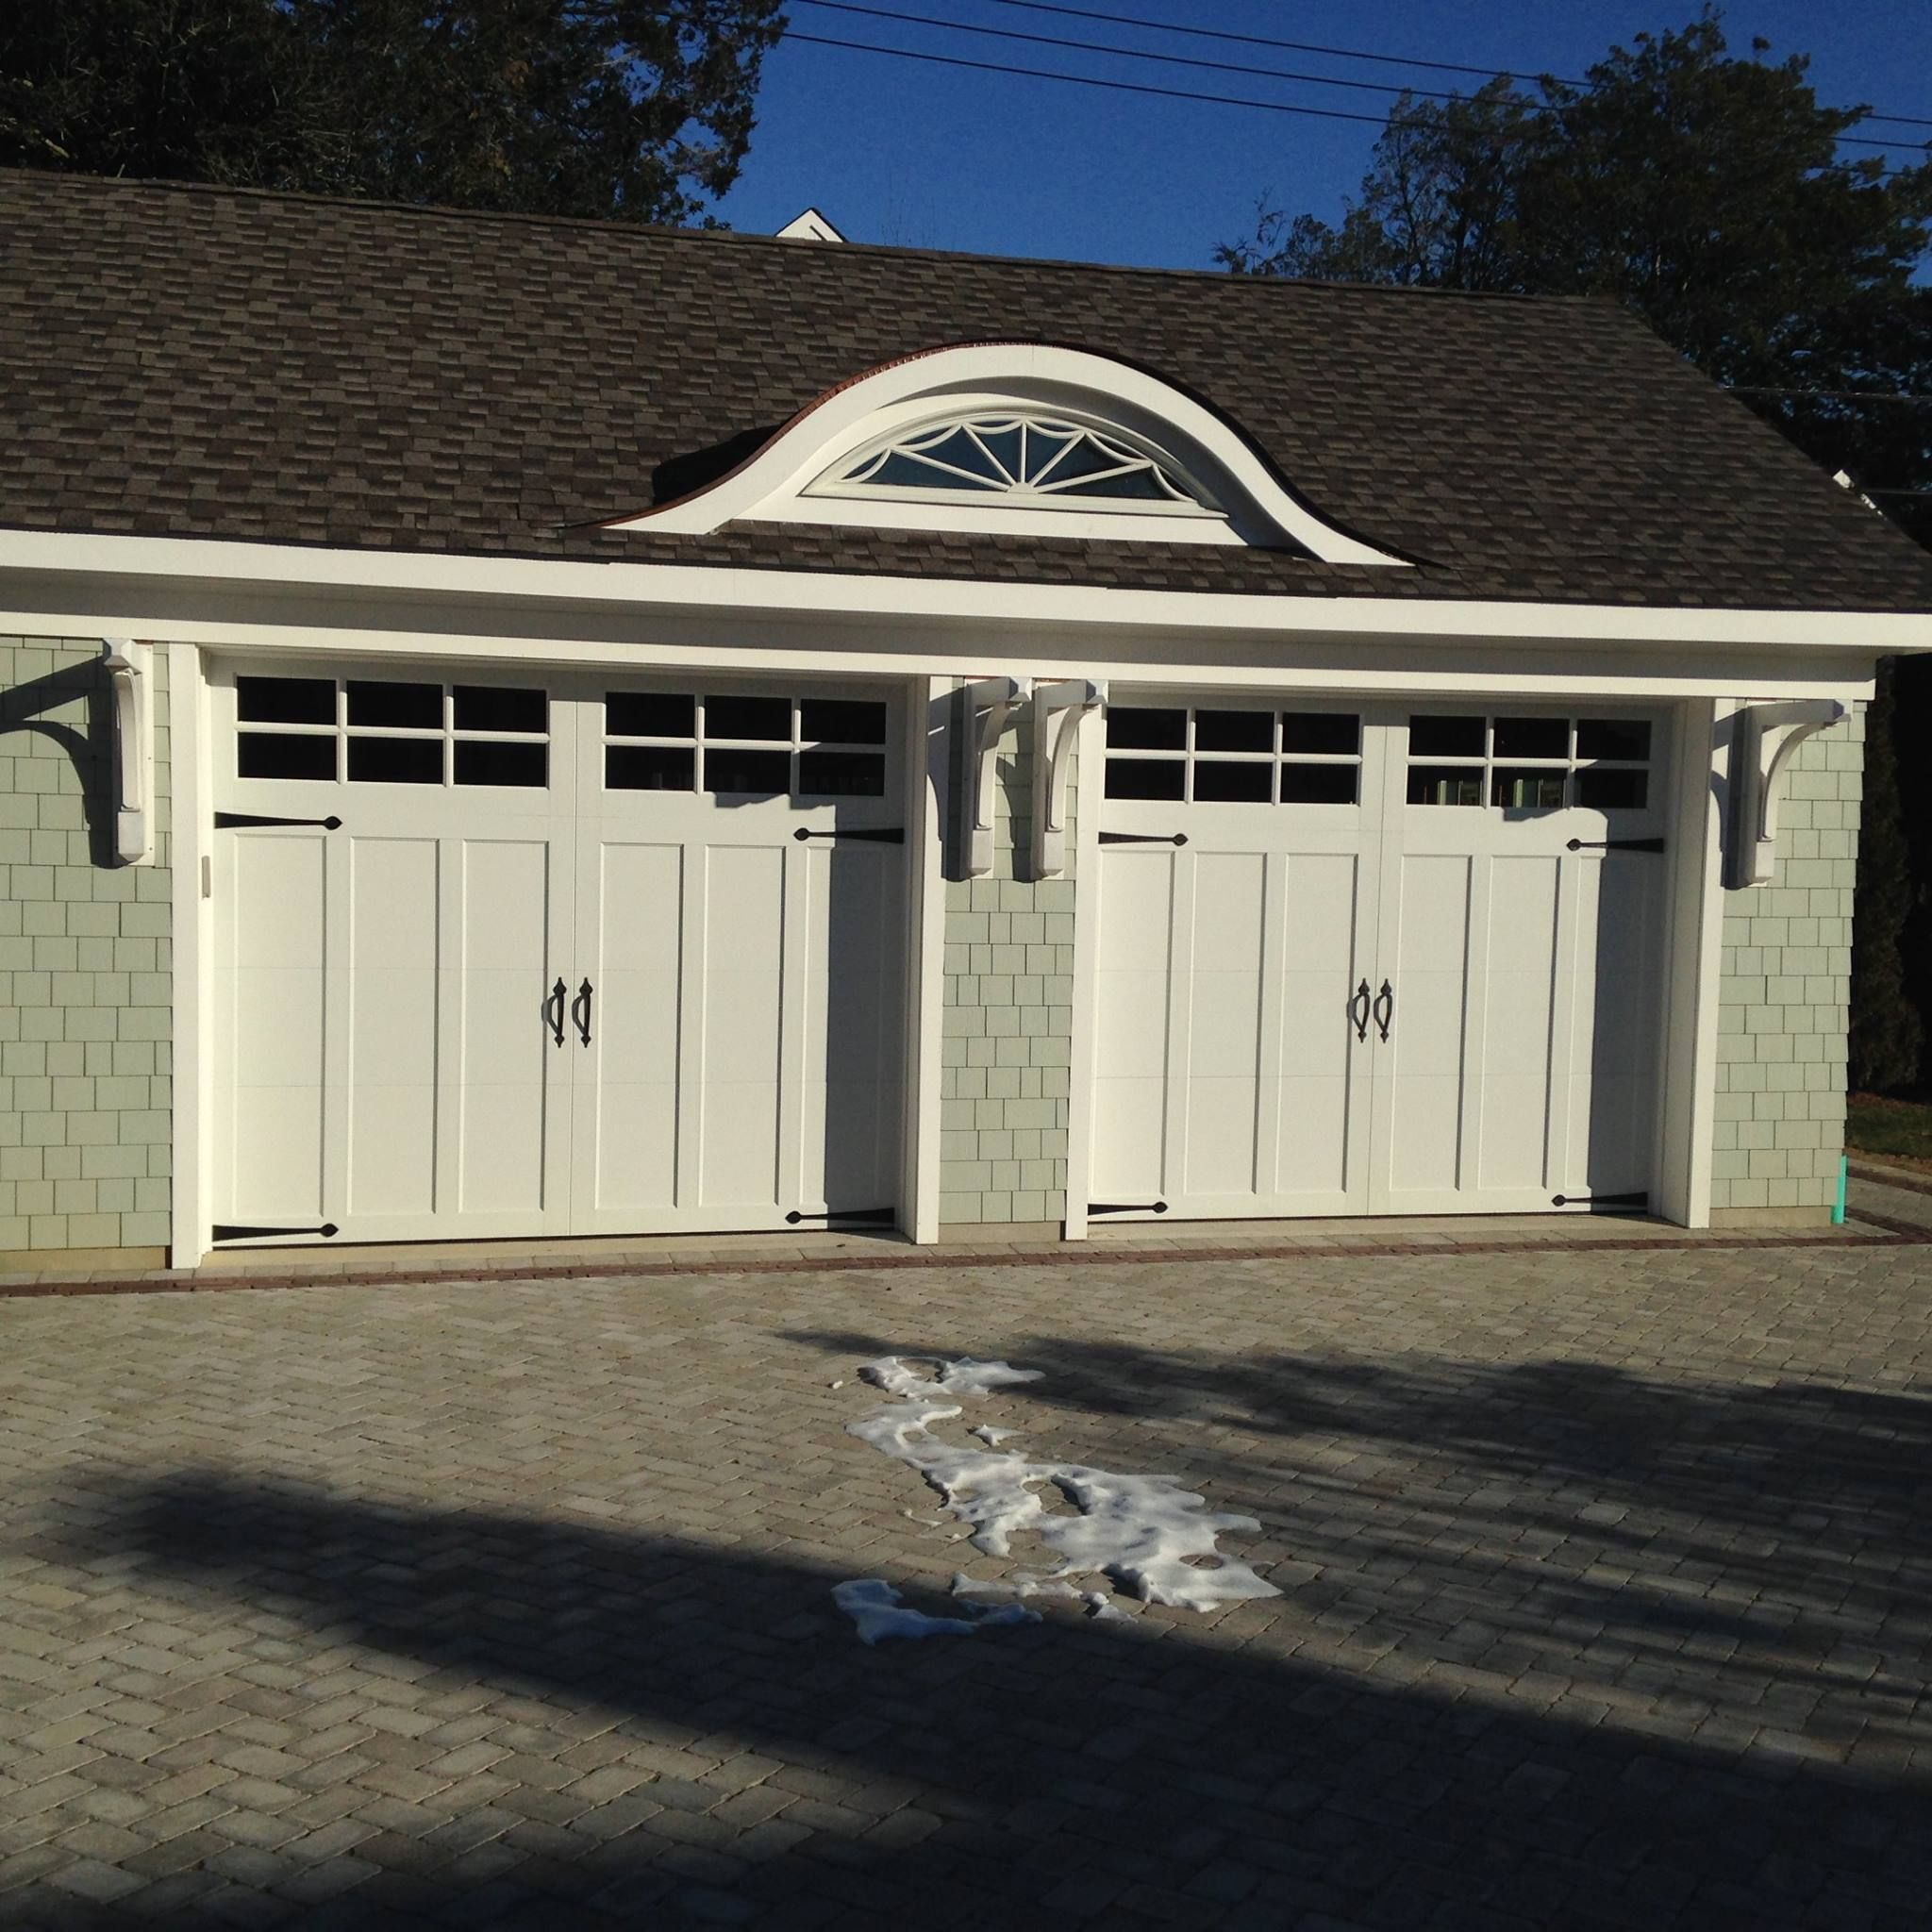 garage or coupons coupon services experience oh city our assistance maintaining you new expertise has grove are in of need team door for current your and a home whether the localsaver looking